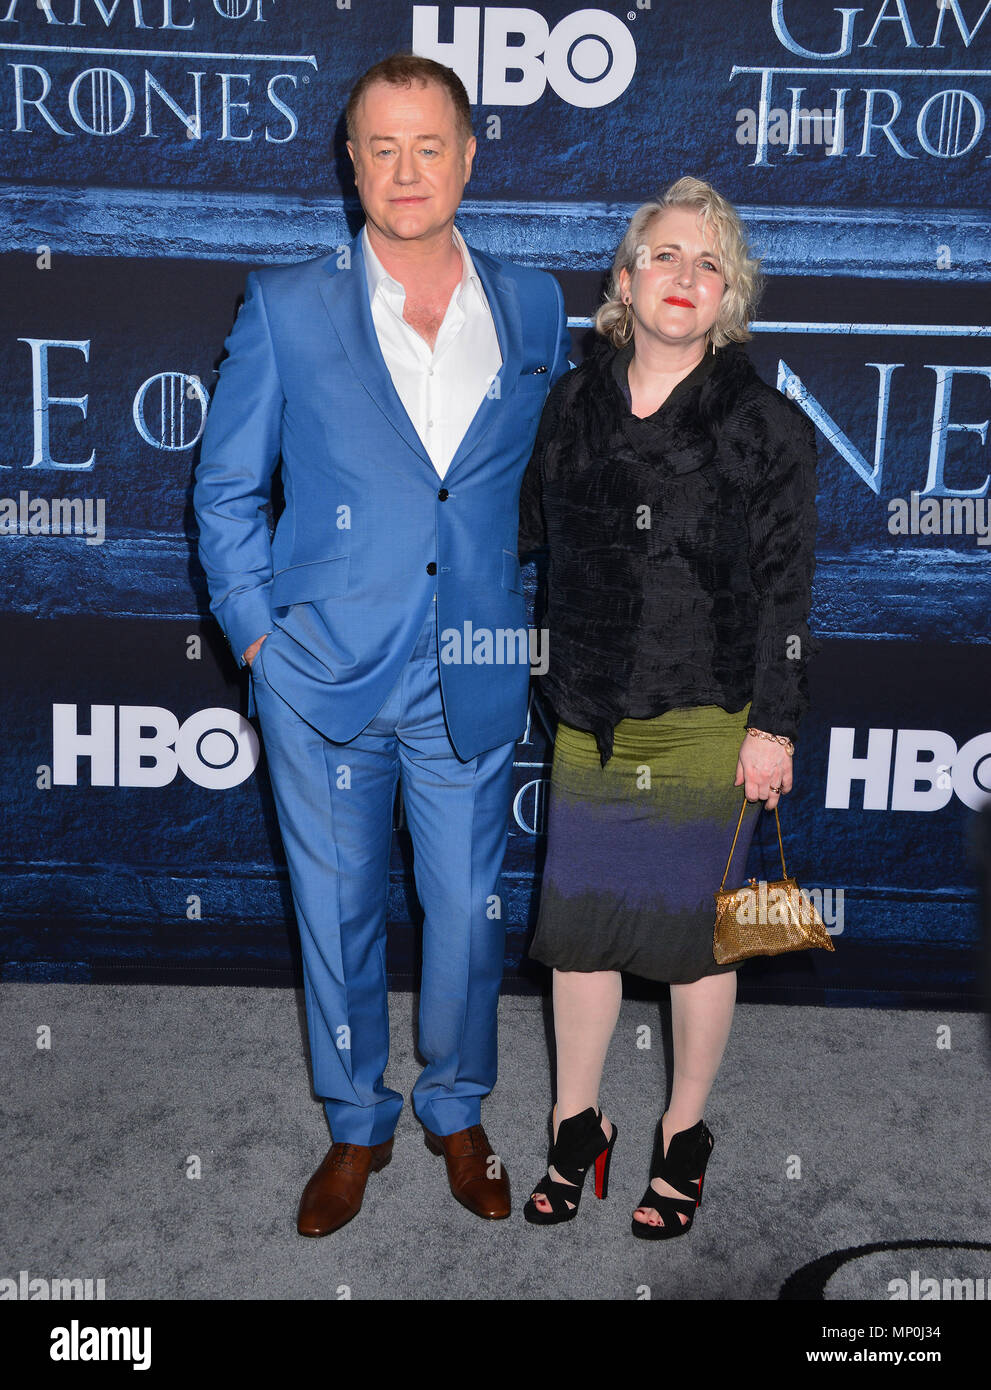 Owen Teale 328 arriving at the Game of Thrones at the TCL Chinese Theatre in Los Angeles. April 10, 2016.Owen Teale 328 ------------- Red Carpet Event, Vertical, USA, Film Industry, Celebrities,  Photography, Bestof, Arts Culture and Entertainment, Topix Celebrities fashion /  Vertical, Best of, Event in Hollywood Life - California,  Red Carpet and backstage, USA, Film Industry, Celebrities,  movie celebrities, TV celebrities, Music celebrities, Photography, Bestof, Arts Culture and Entertainment,  Topix, vertical,  family from from the year , 2016, inquiry tsuni@Gamma-USA.com Husband and wife - Stock Image